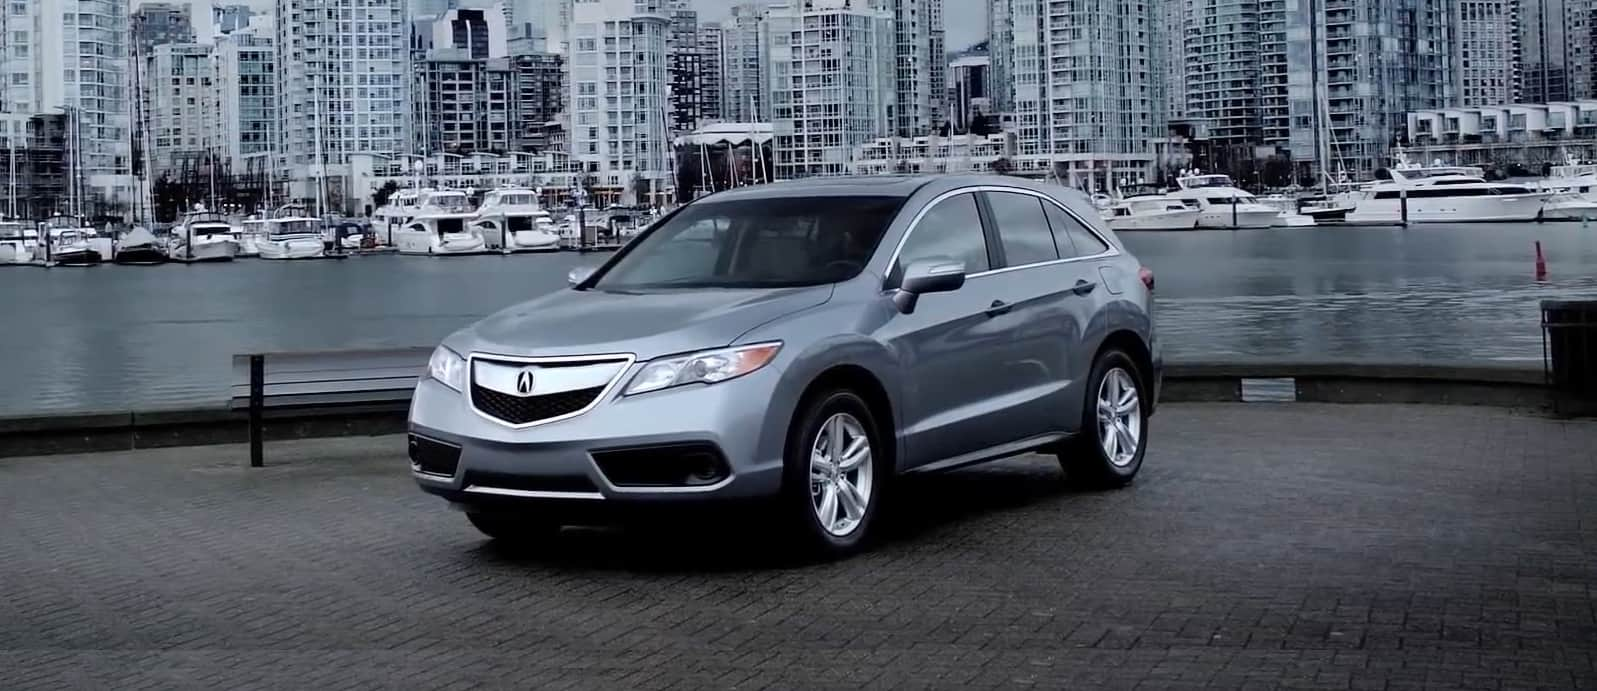 kelley first acura the blue latest car rdx all book drive review news